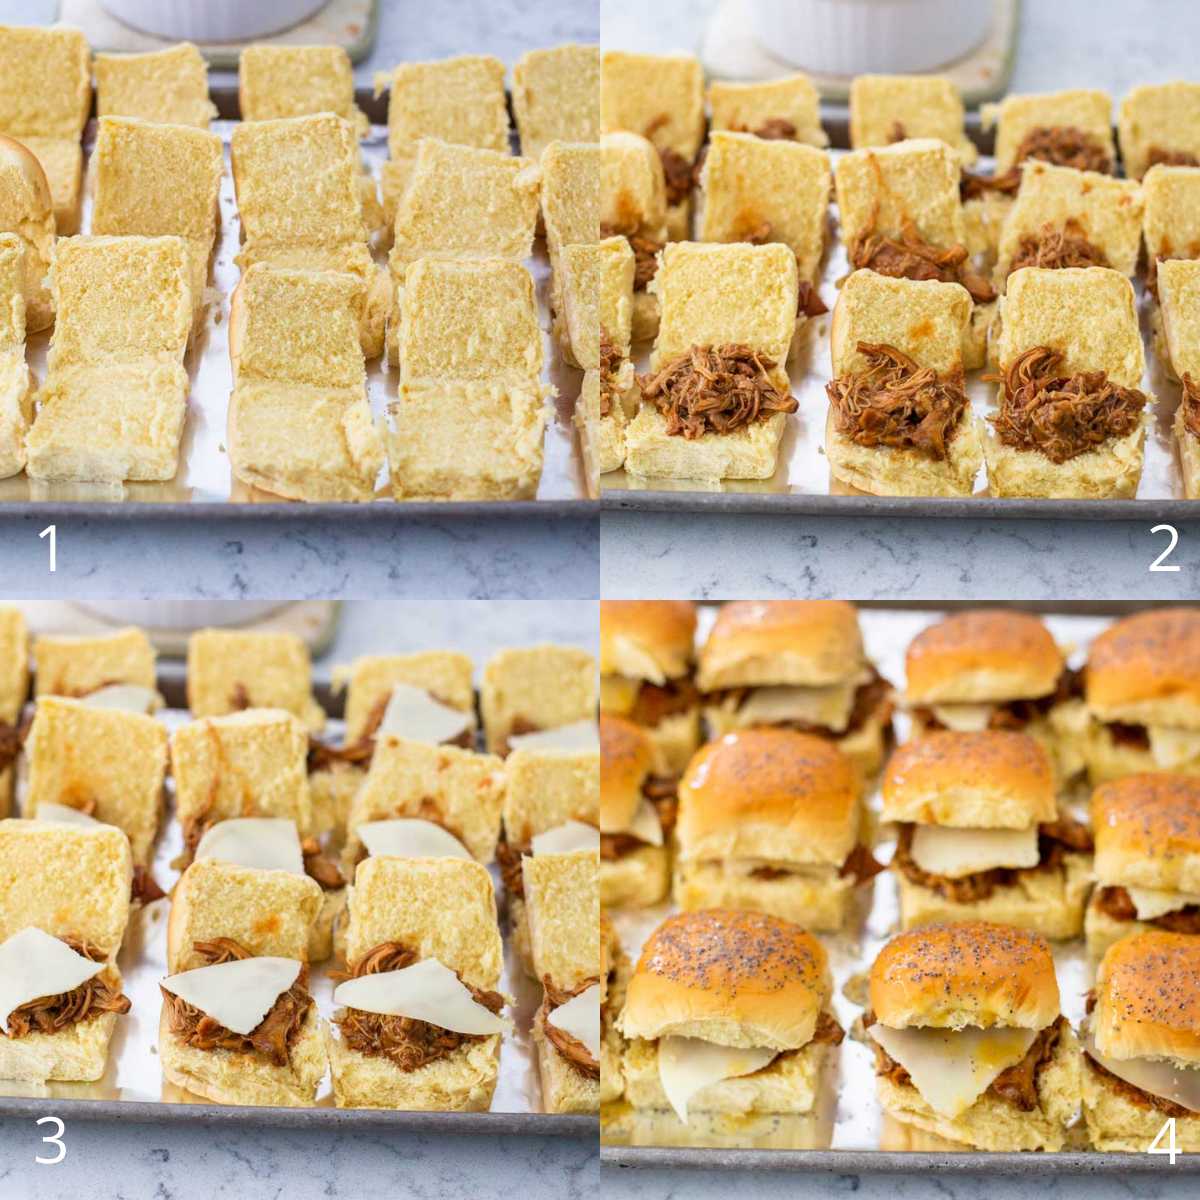 Step by step photos show how to assemble the BBQ chicken sliders.